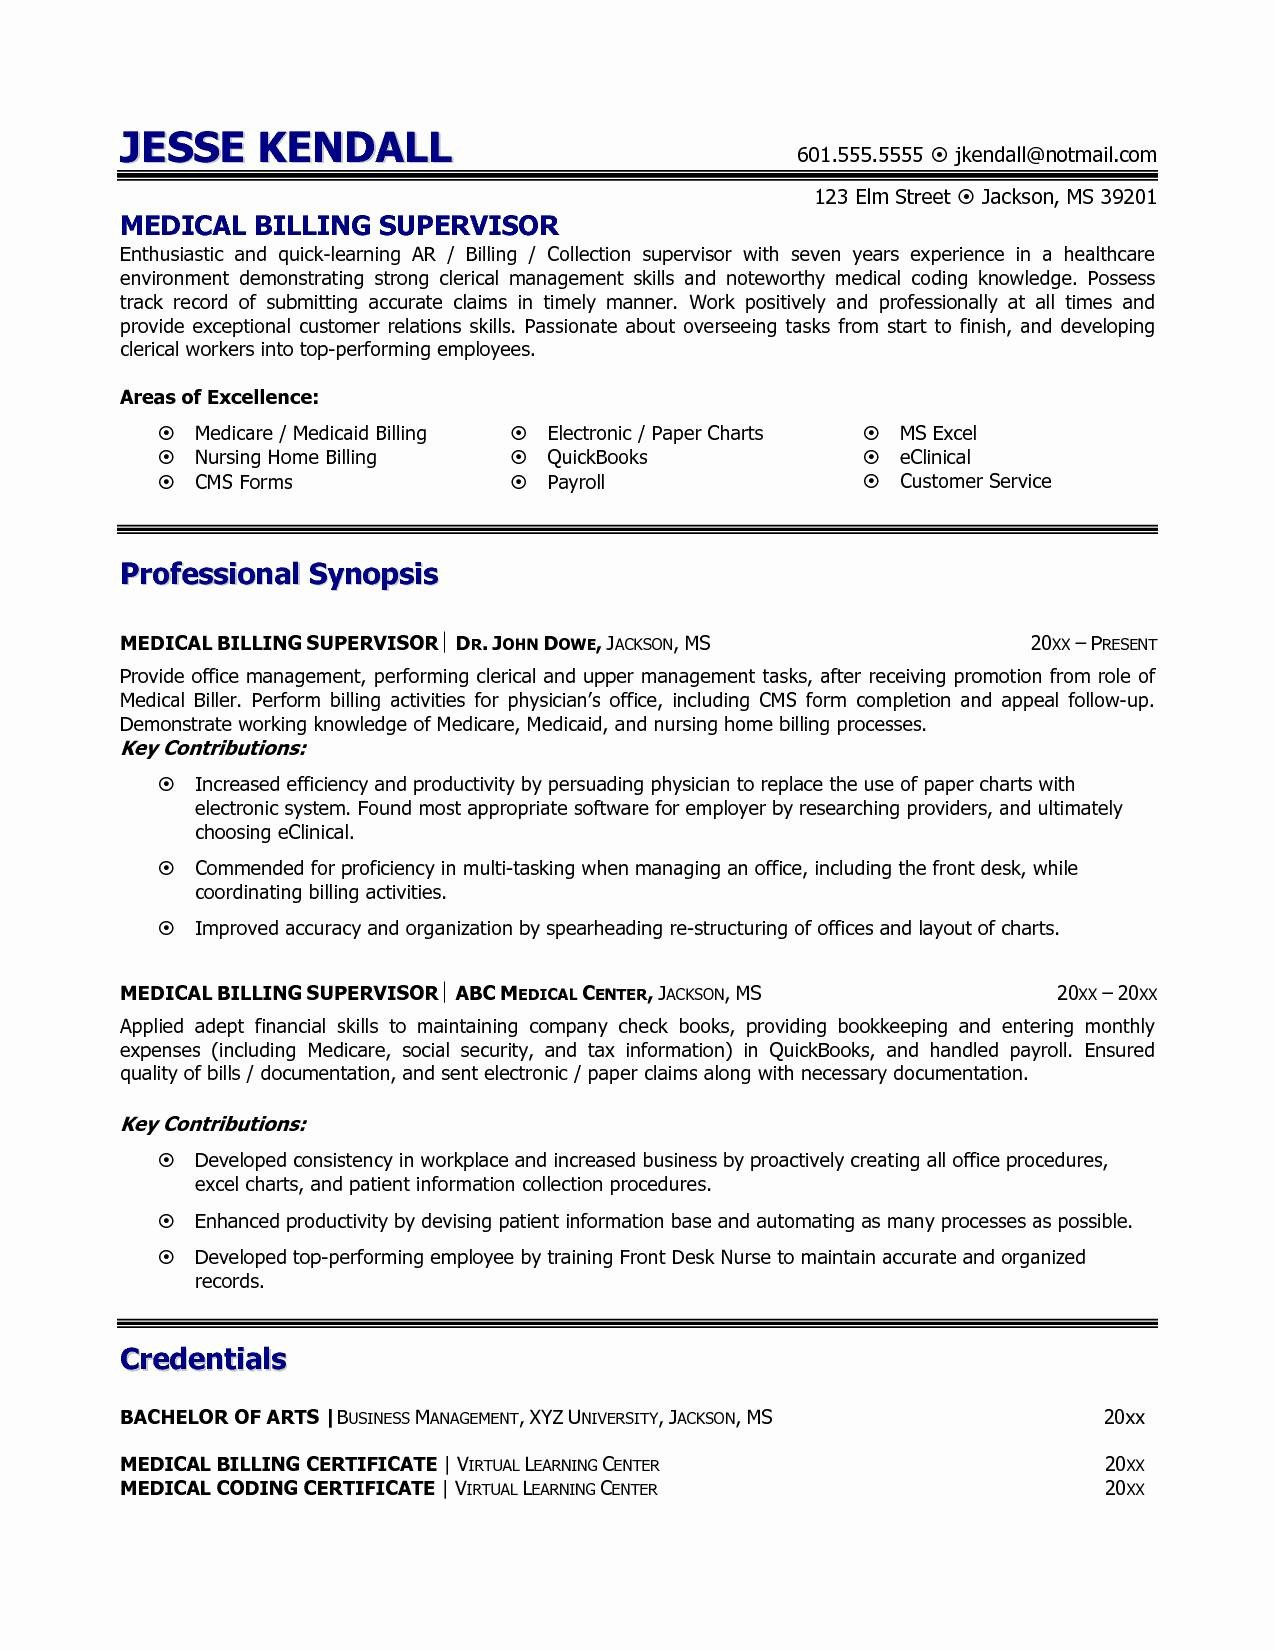 Medical Coding Resume Example - Medical Coding Resume Samples Best Job Description Medical